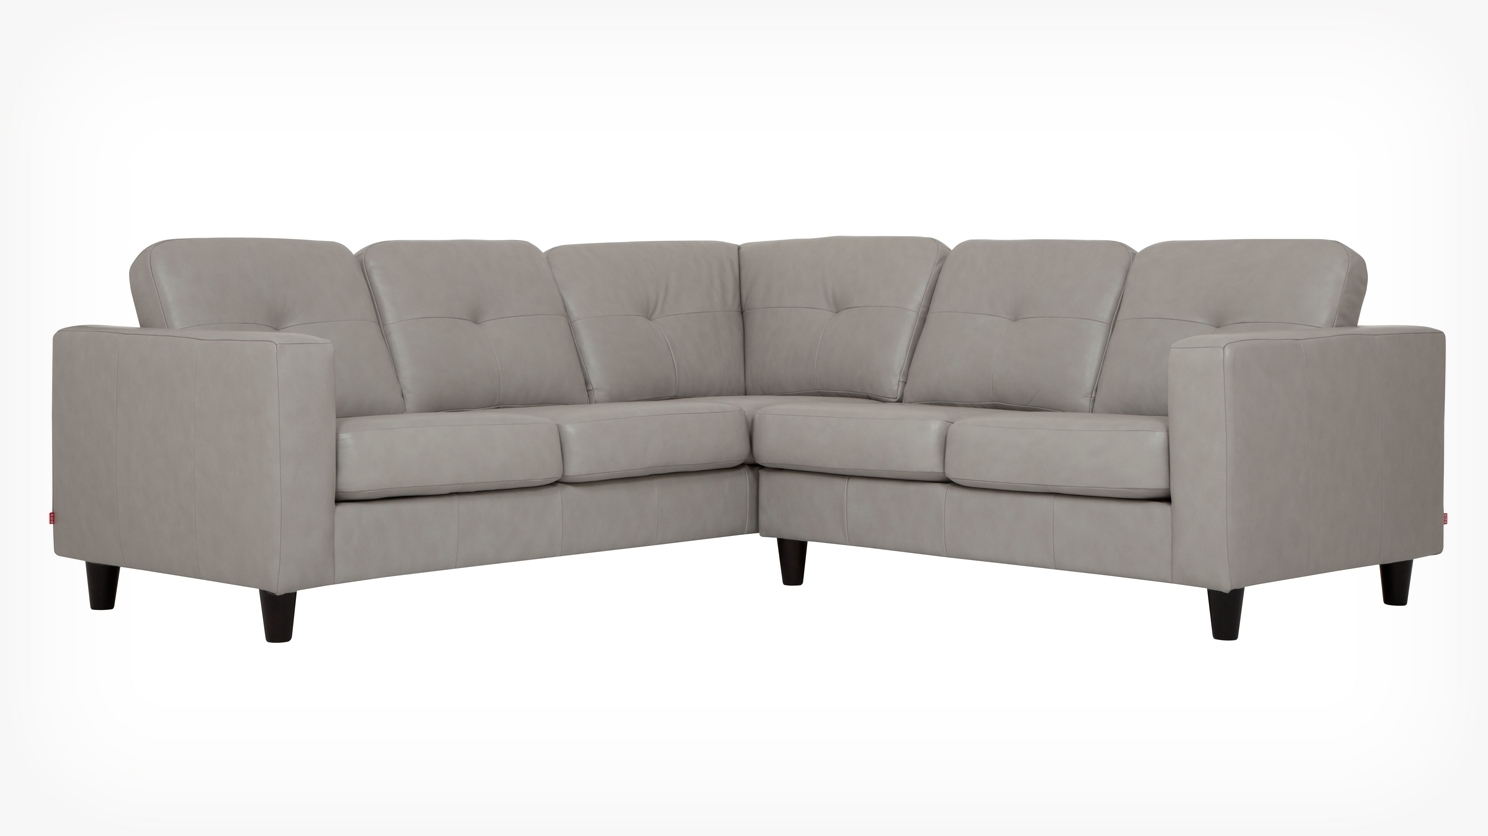 Solo 2 Piece Sectional Sofa – Leather Intended For Eq3 Sectional Sofas (View 17 of 20)